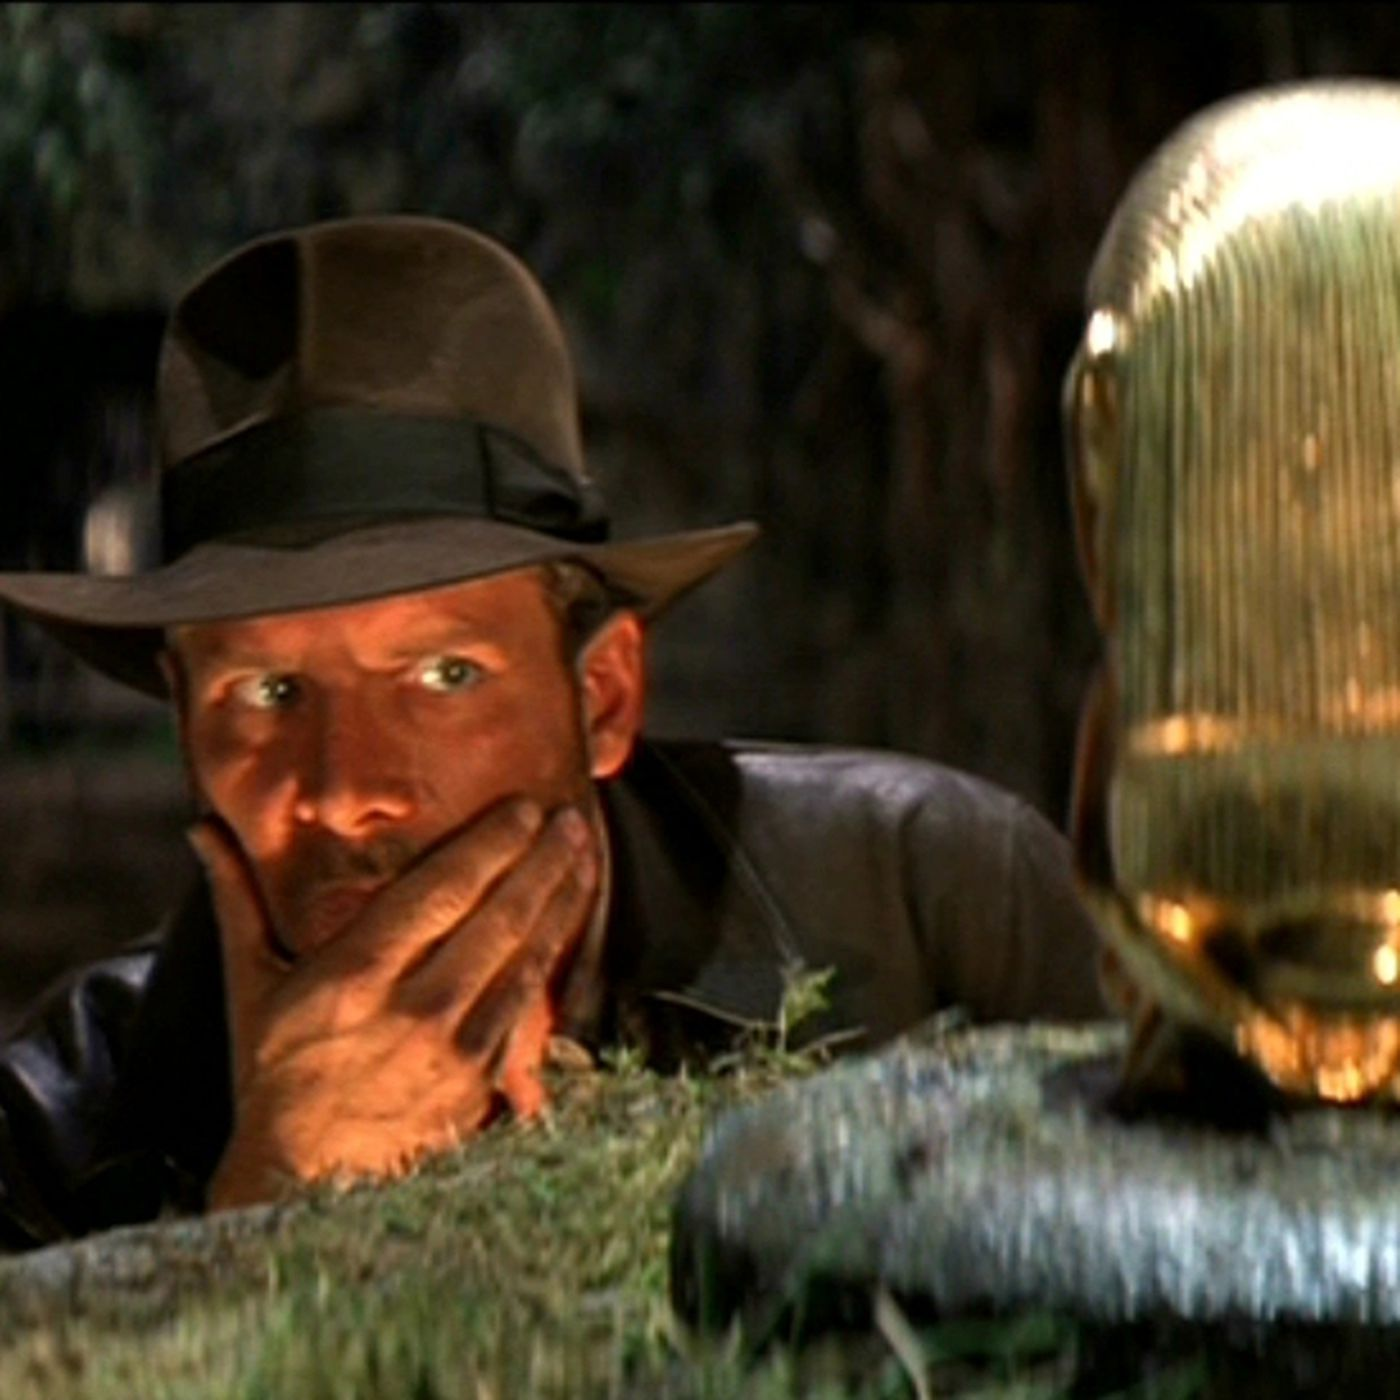 Dr. Jones and the Lost Grail